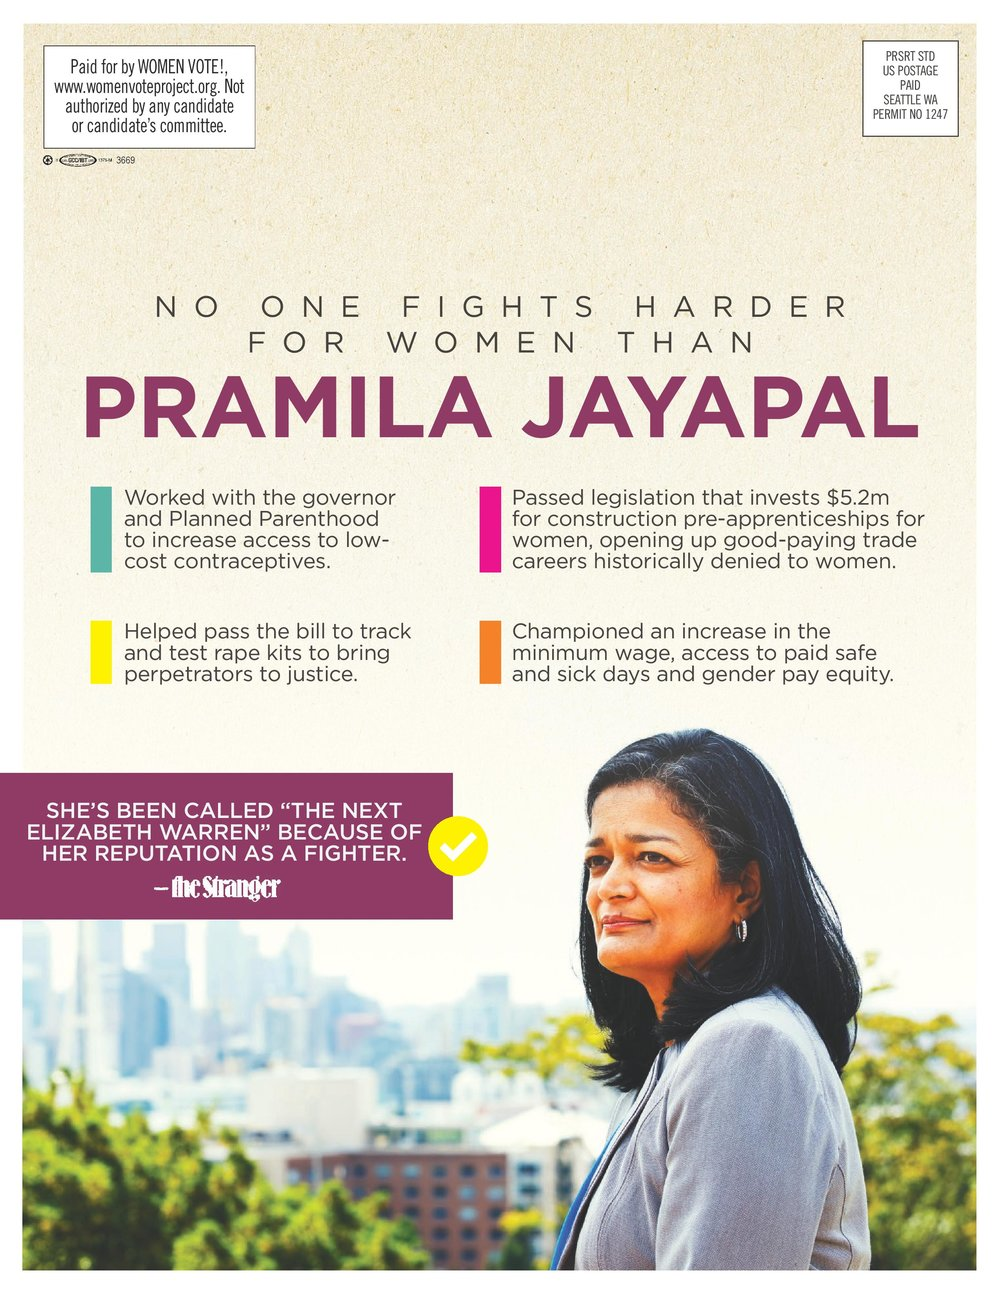 EMILY_Pramila_GE_2_Women_3669.proof-page-002.jpeg